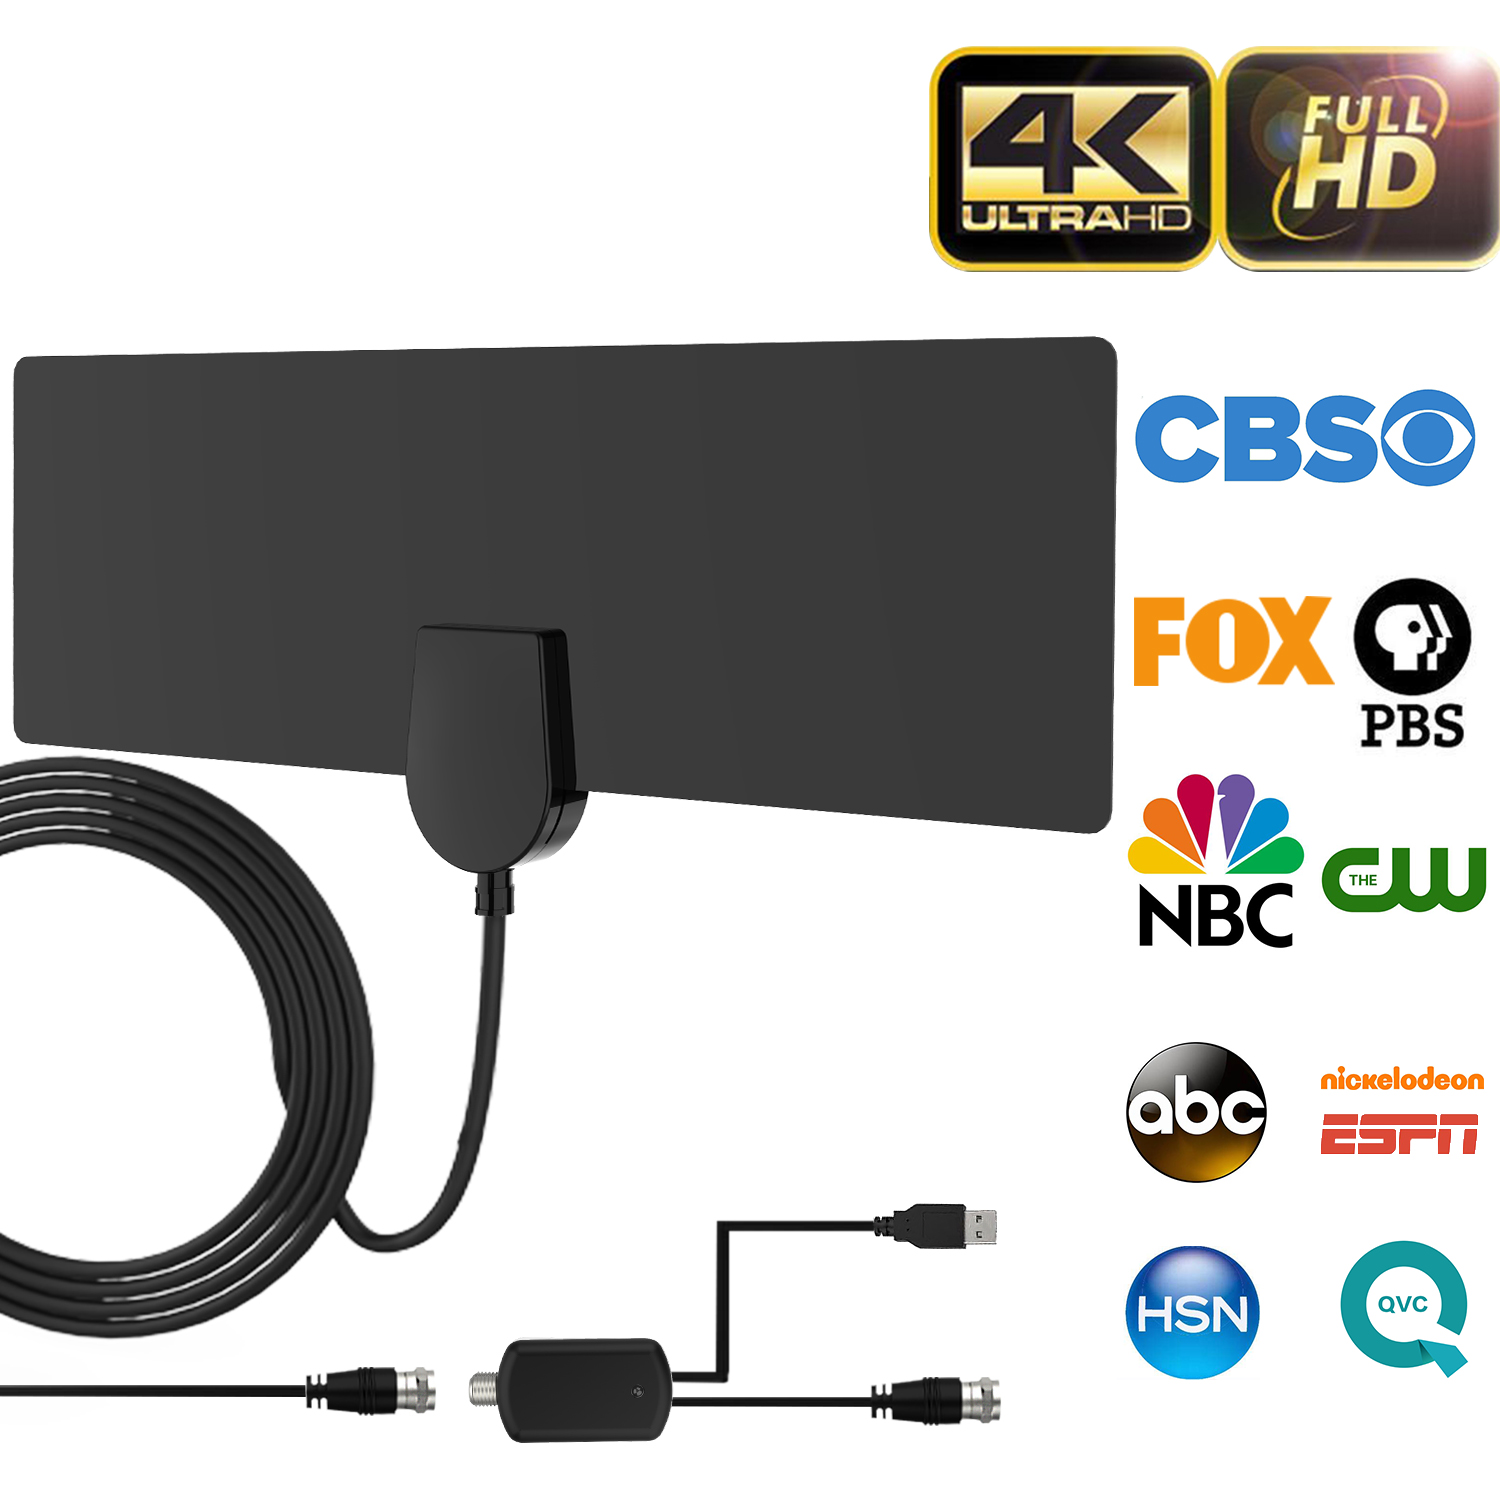 Updated 2019 Version HDTV Antenna,Universal Indoor Digital HDTV Antenna Amplified 50 Miles Range with Amplifier Signal Booster 4K HD VHF UHF Freeview for Life Local Channels for Home Smart Television